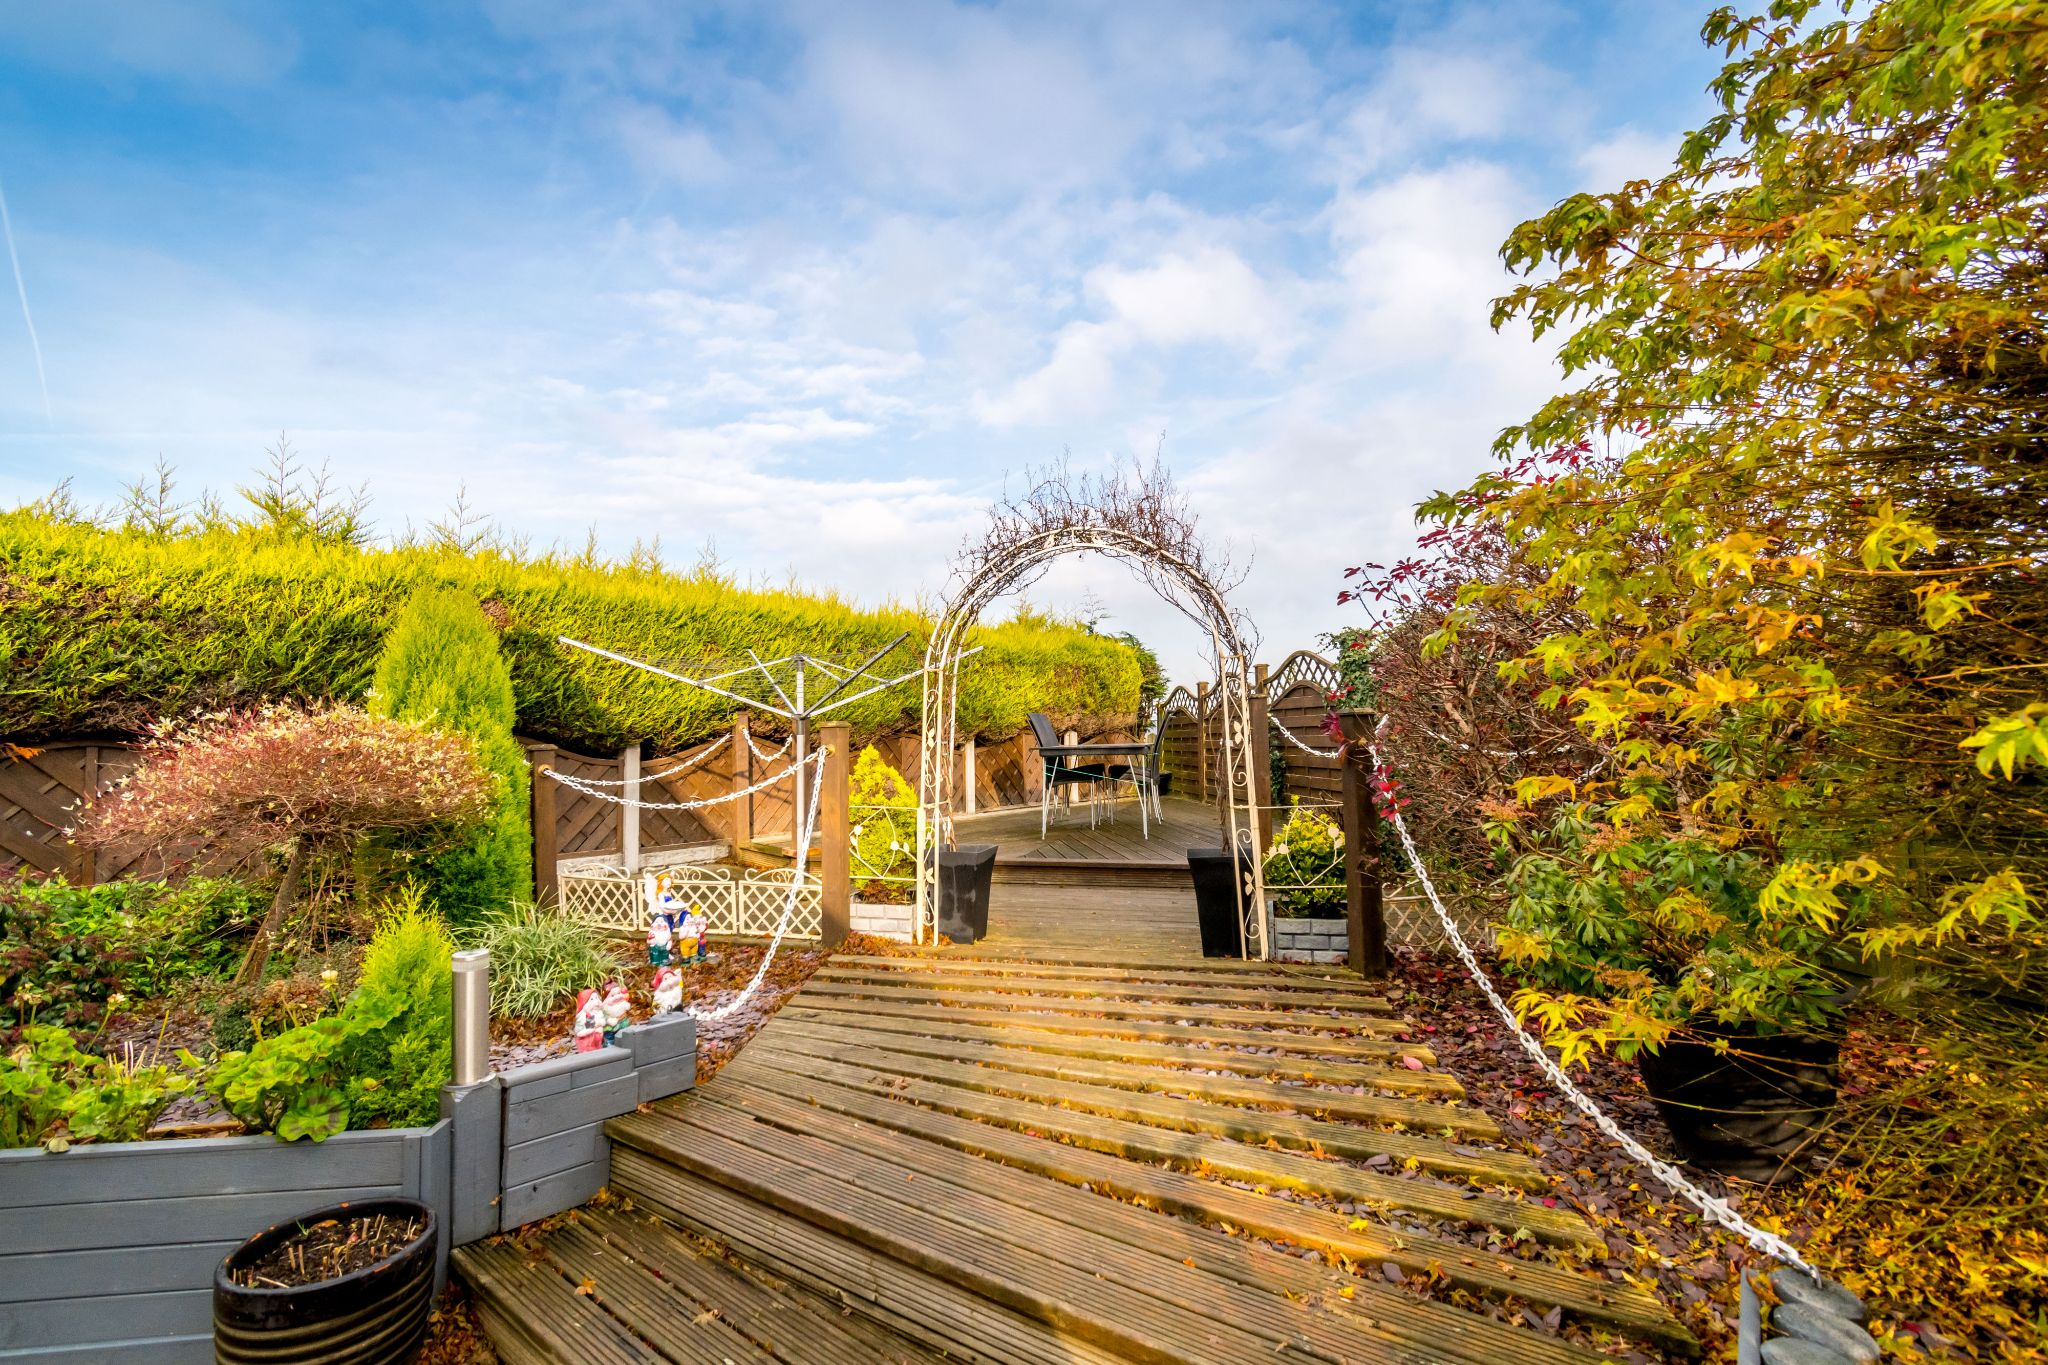 3 bedroom detached bungalow For Sale in Hove Edge - Decked area